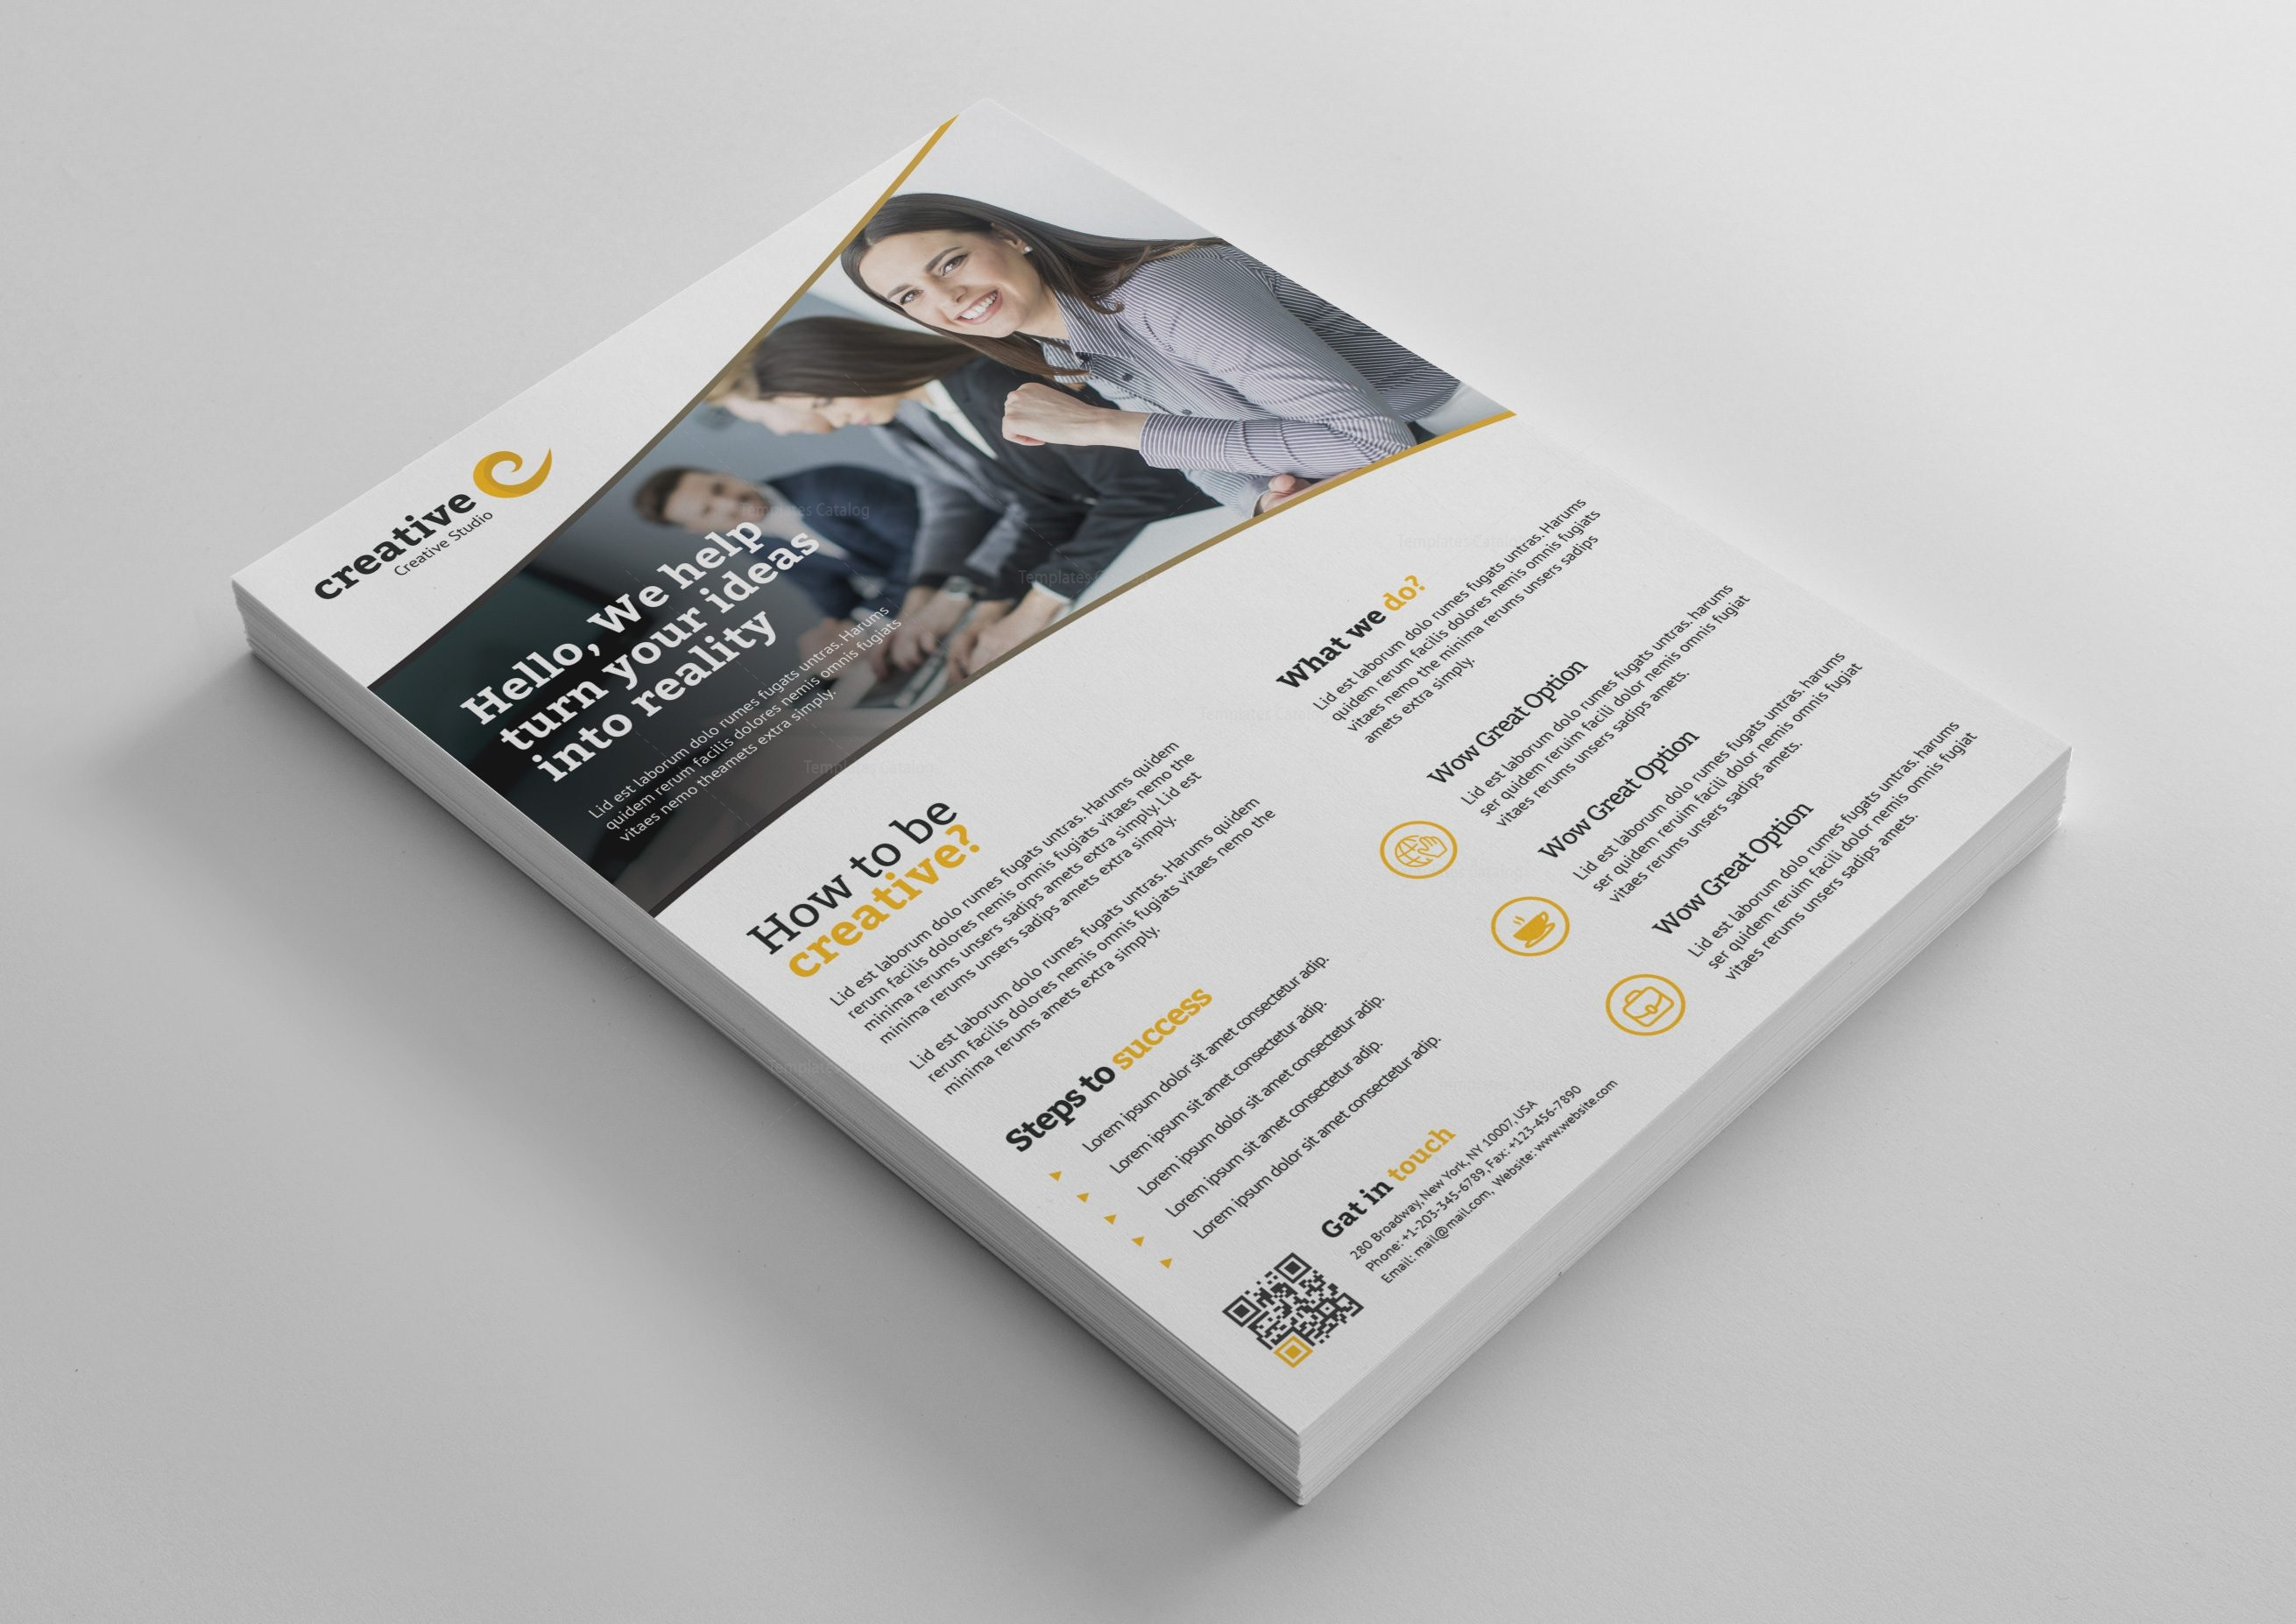 Wunderbar Box Flyer Vorlage Bilder - Entry Level Resume Vorlagen ...